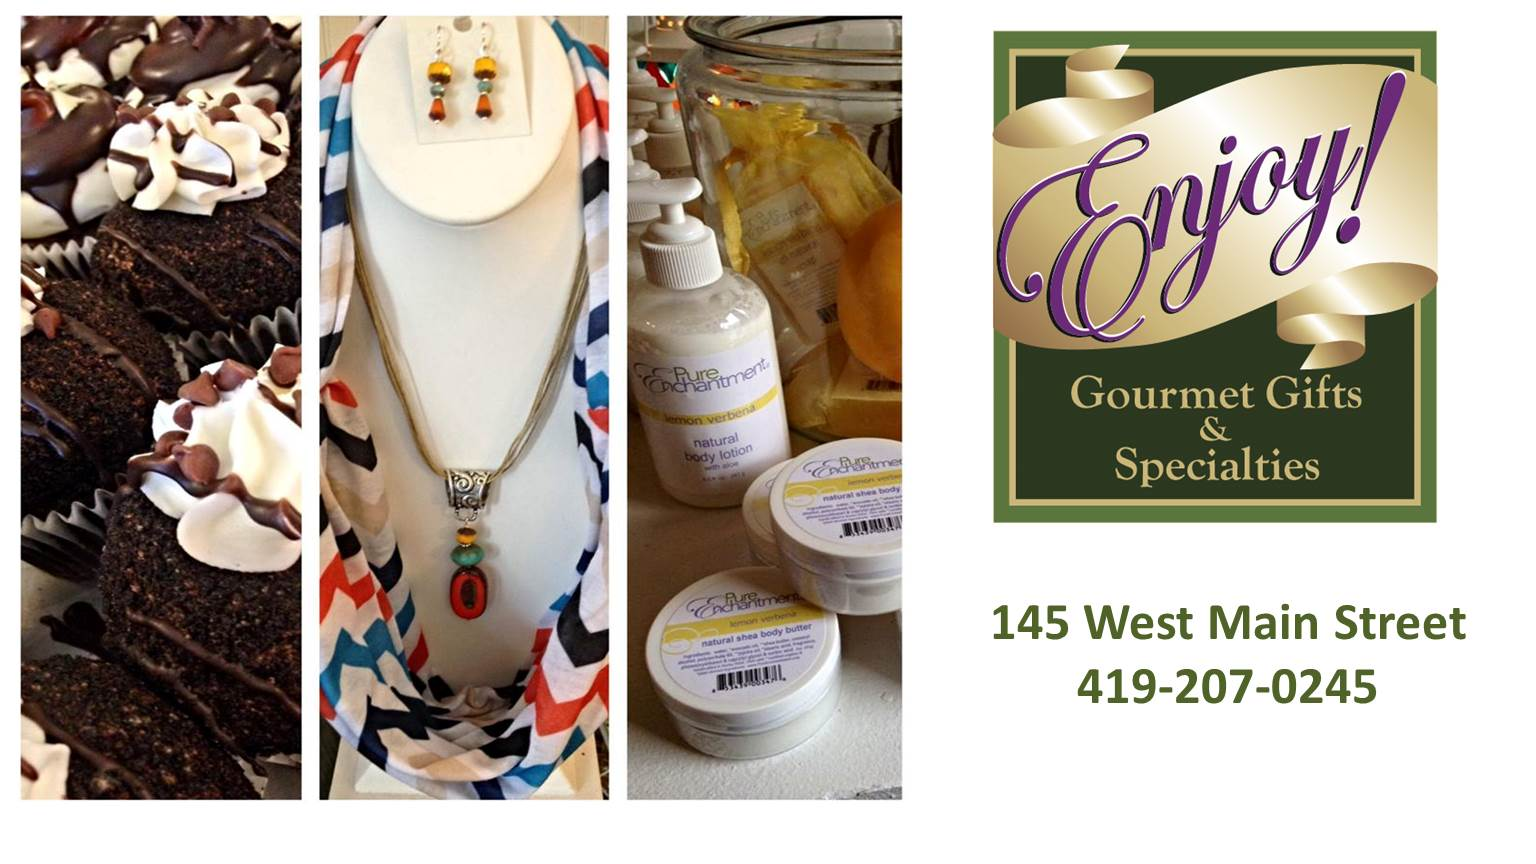 Enjoy! Gourmet Gifts